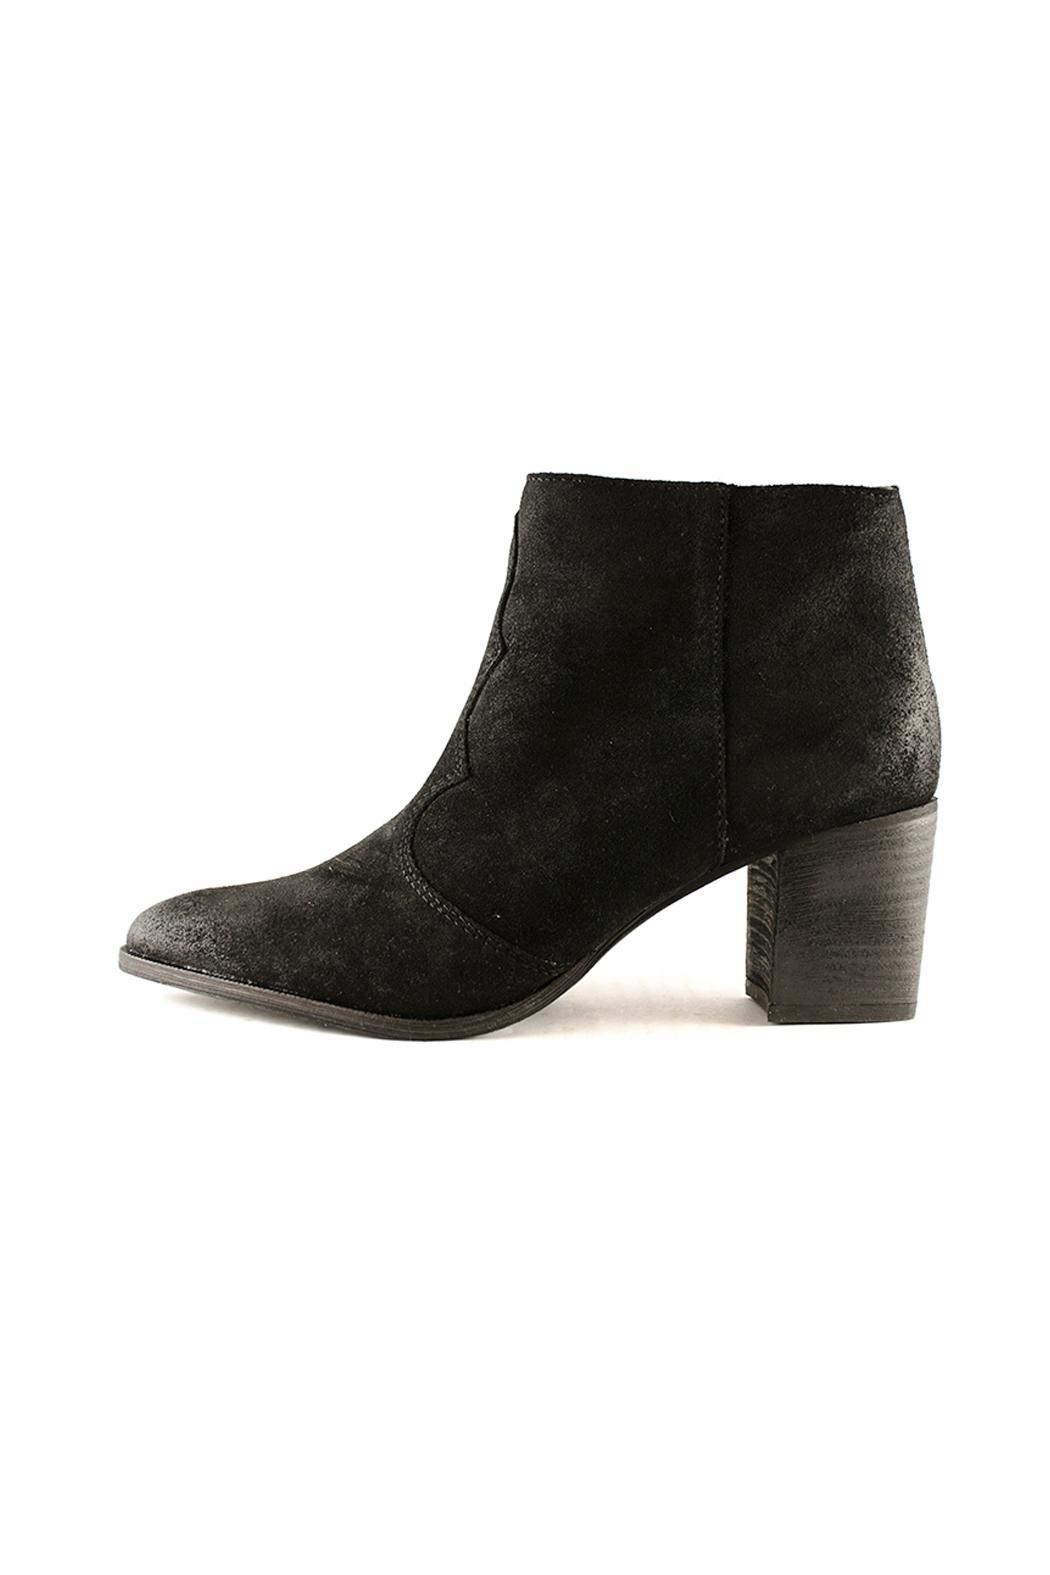 Lennon Heeled Booties